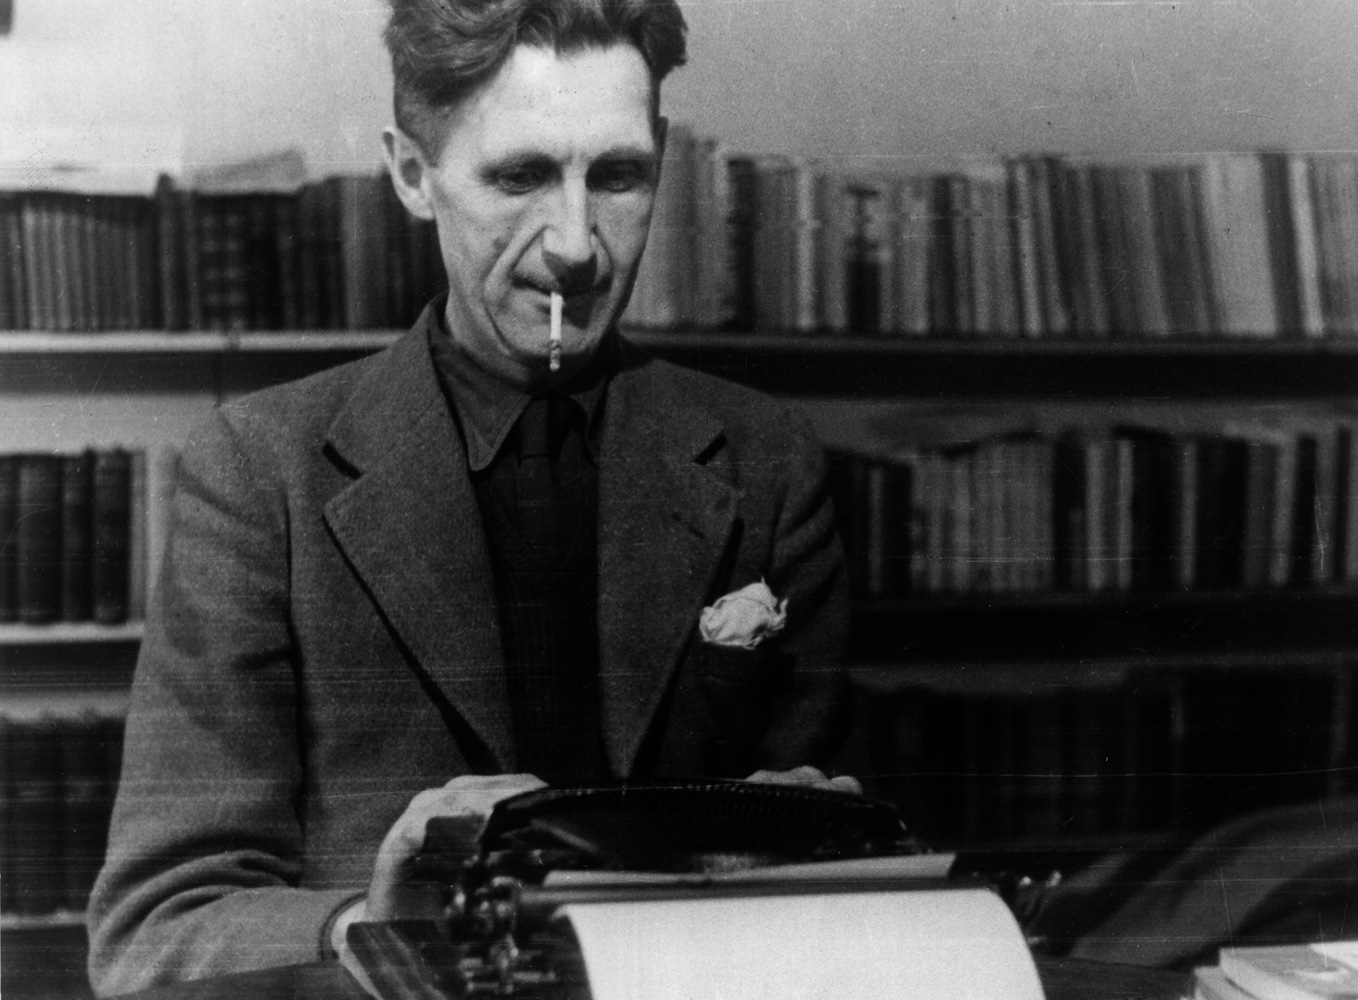 a biography of george orwell a writer A brief biography of george orwell: george orwell was the pen name of eric blair, a twentieth century writer, equally at home with journalism, essays, novels, literary criticism and social commentary.